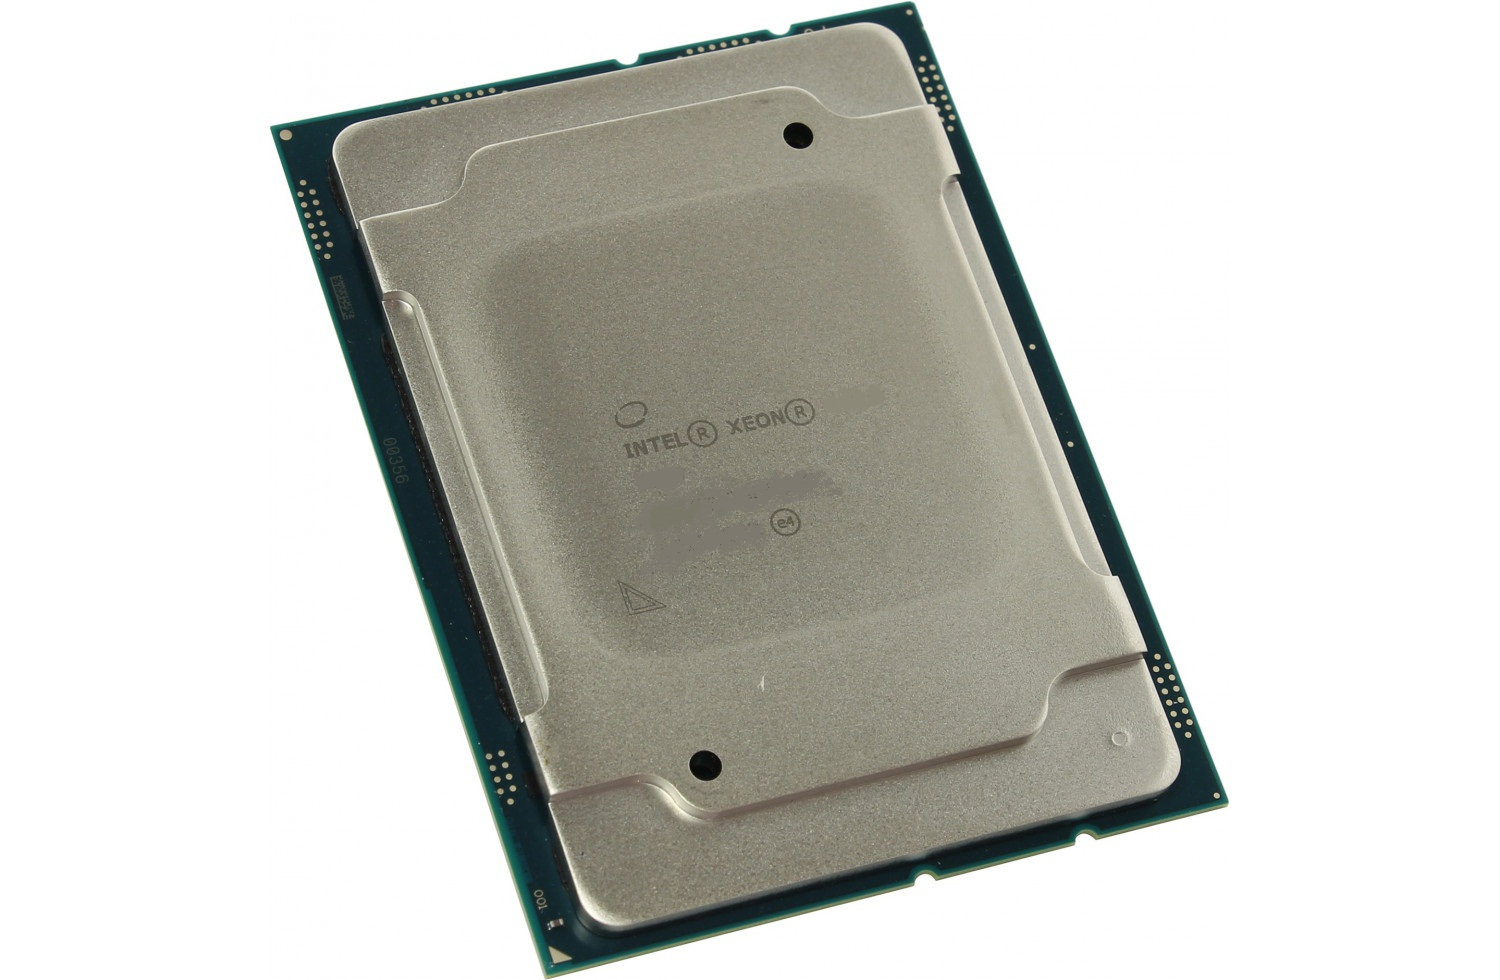 Процессор HPE DL380 Gen10 Intel® Xeon-Silver 4112 (2.6GHz/4-core/85W) Processor Kit